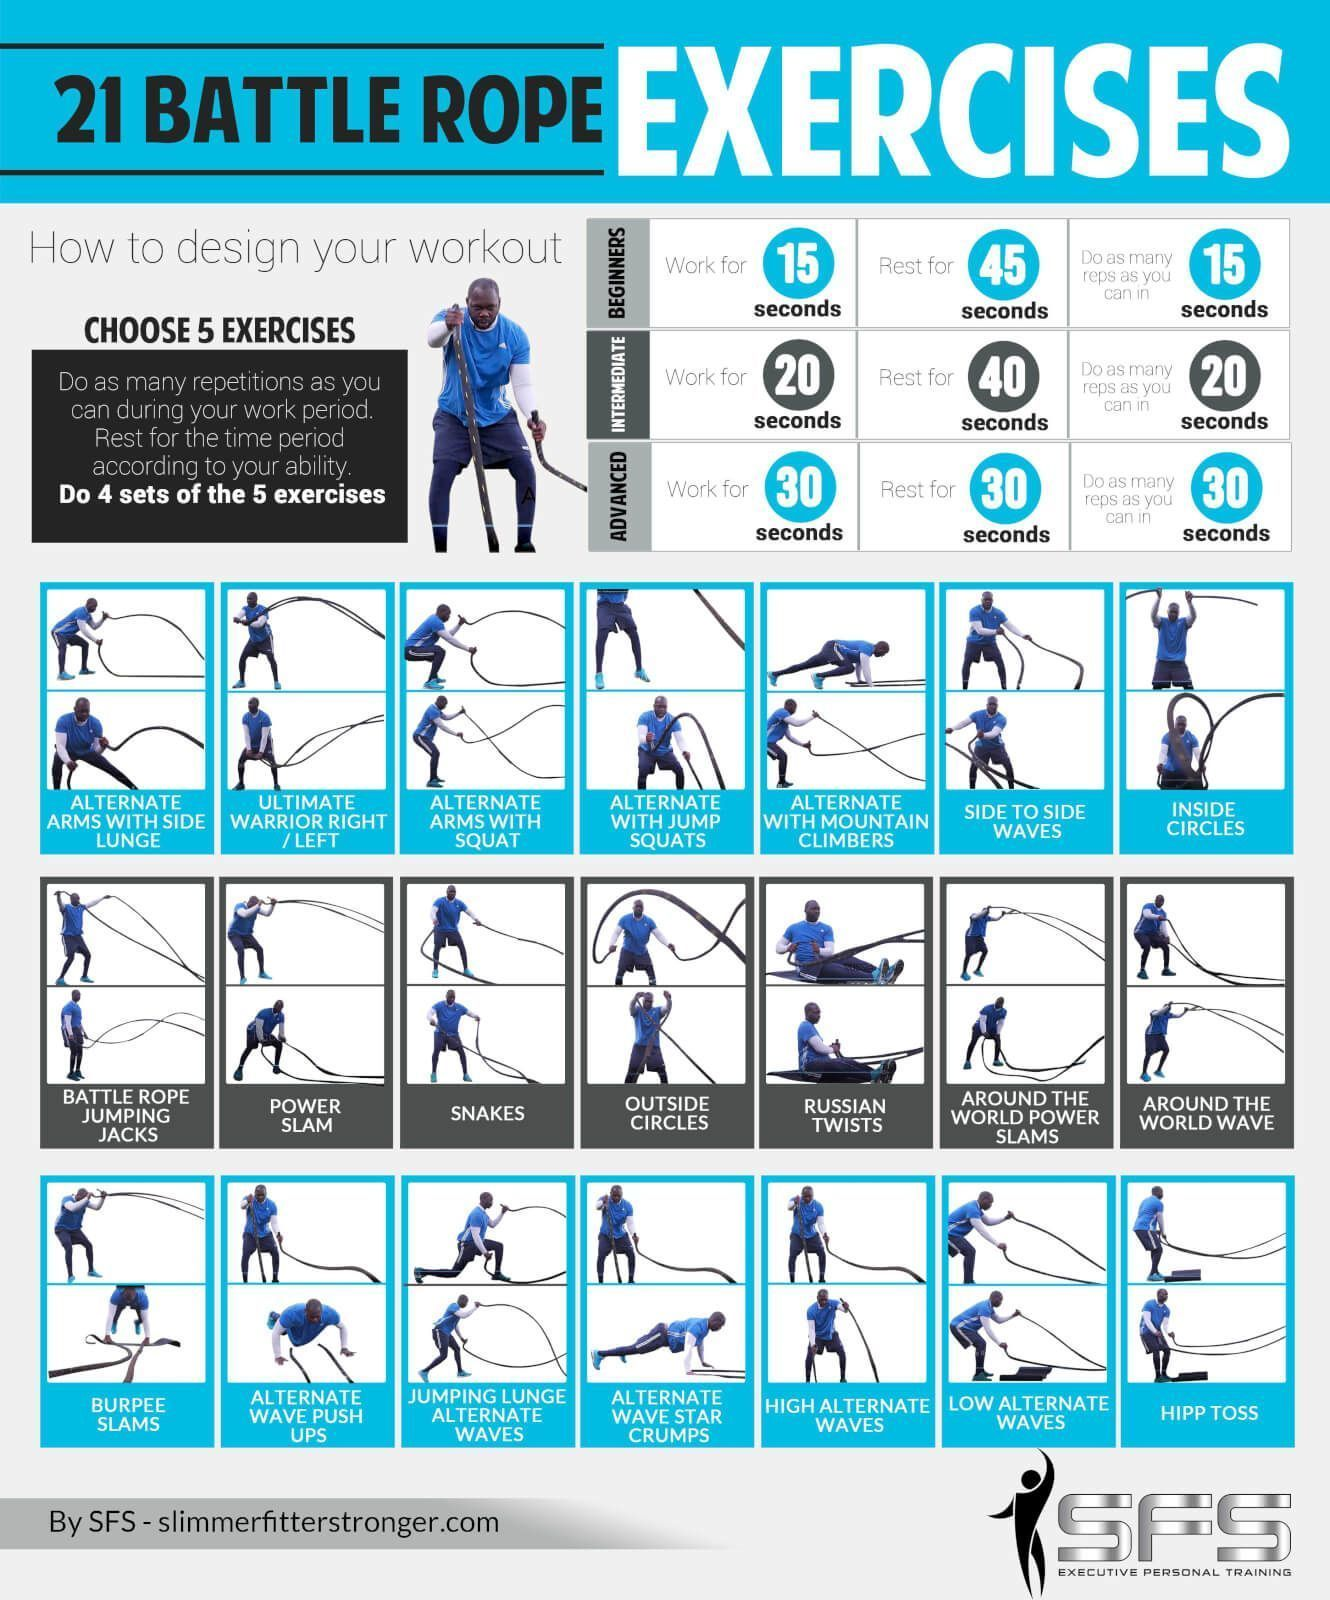 Makeup And Age Battle Ropes Rope Exercises Workout For Beginners